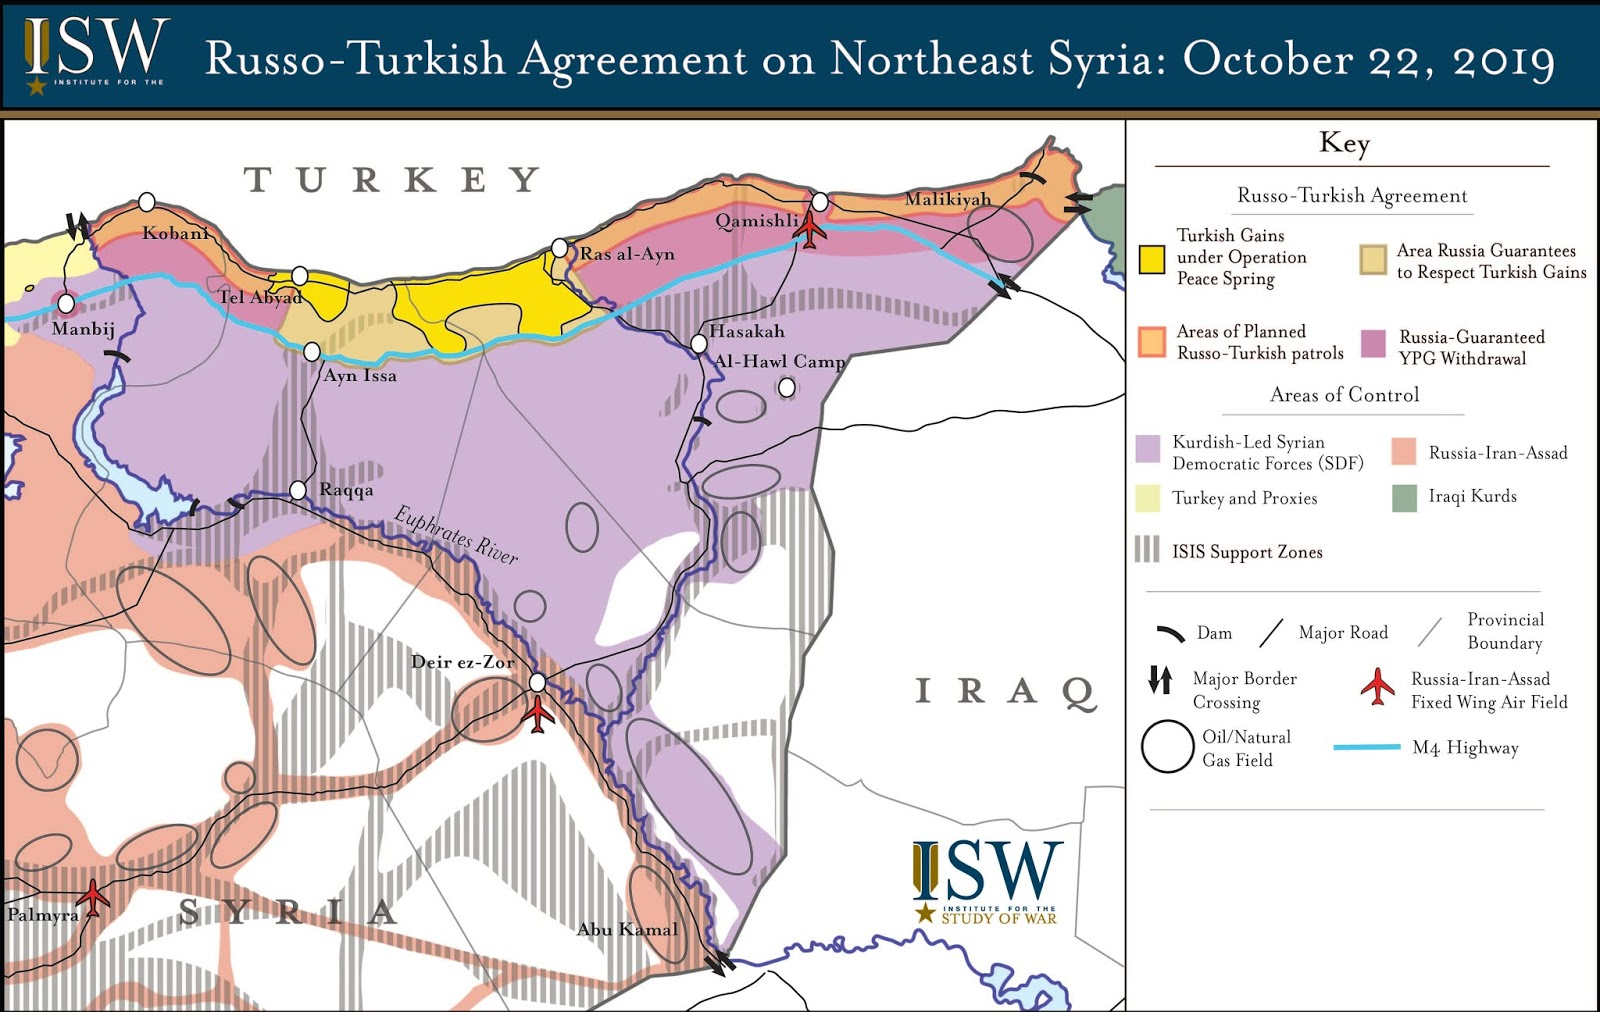 ISW+Map+-+Russo-Turkish+Agreement+on+NE+